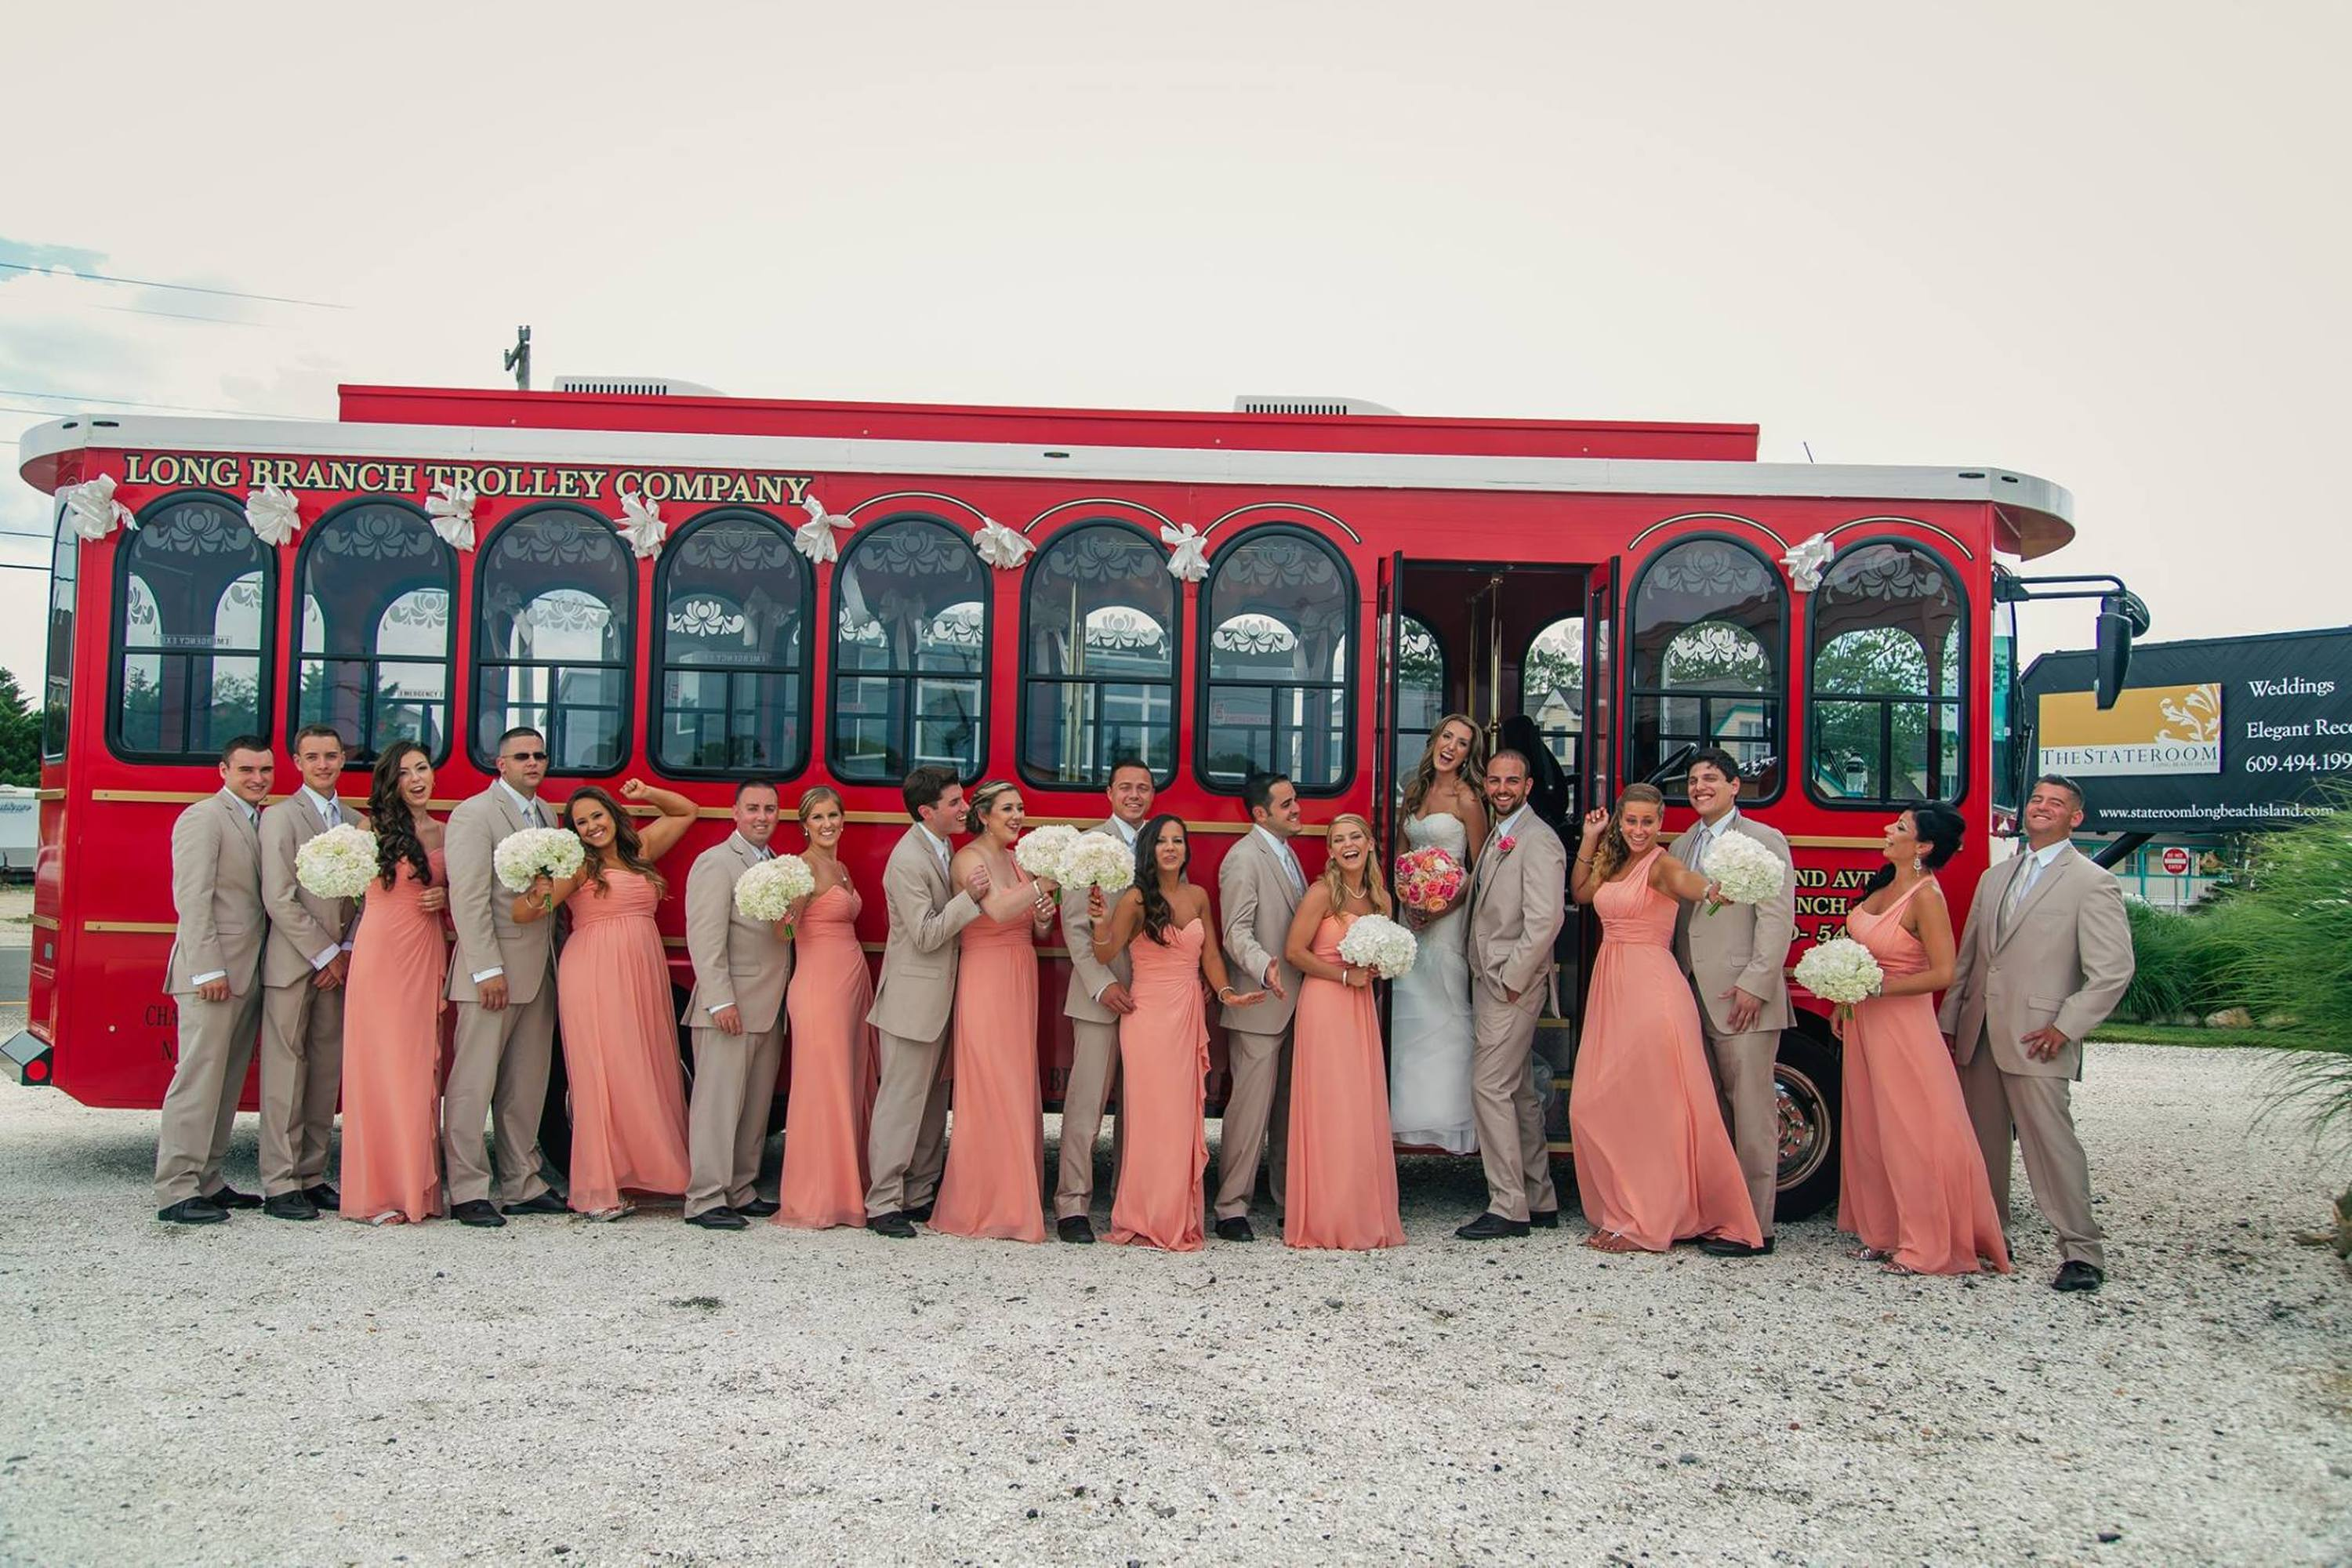 Long Branch Trolley Company Weddings